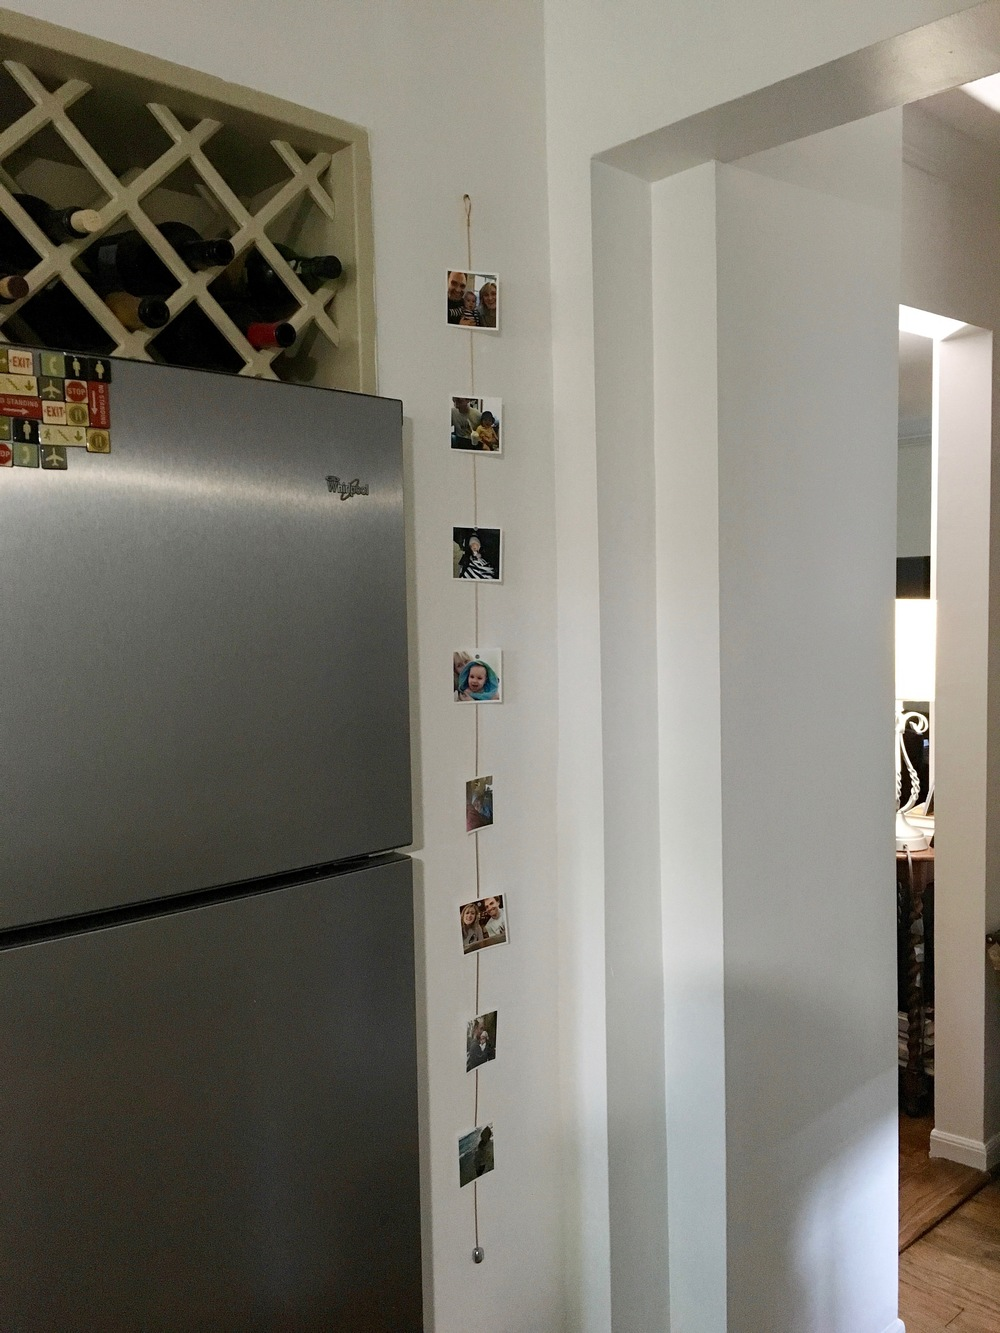 This is a little strip of awkward wall between the fridge and hallway.  We decided to utilize it for photos instead of cluttering the front of fridge.   (Please ignore the tan wine rack area--working to remove that asap).